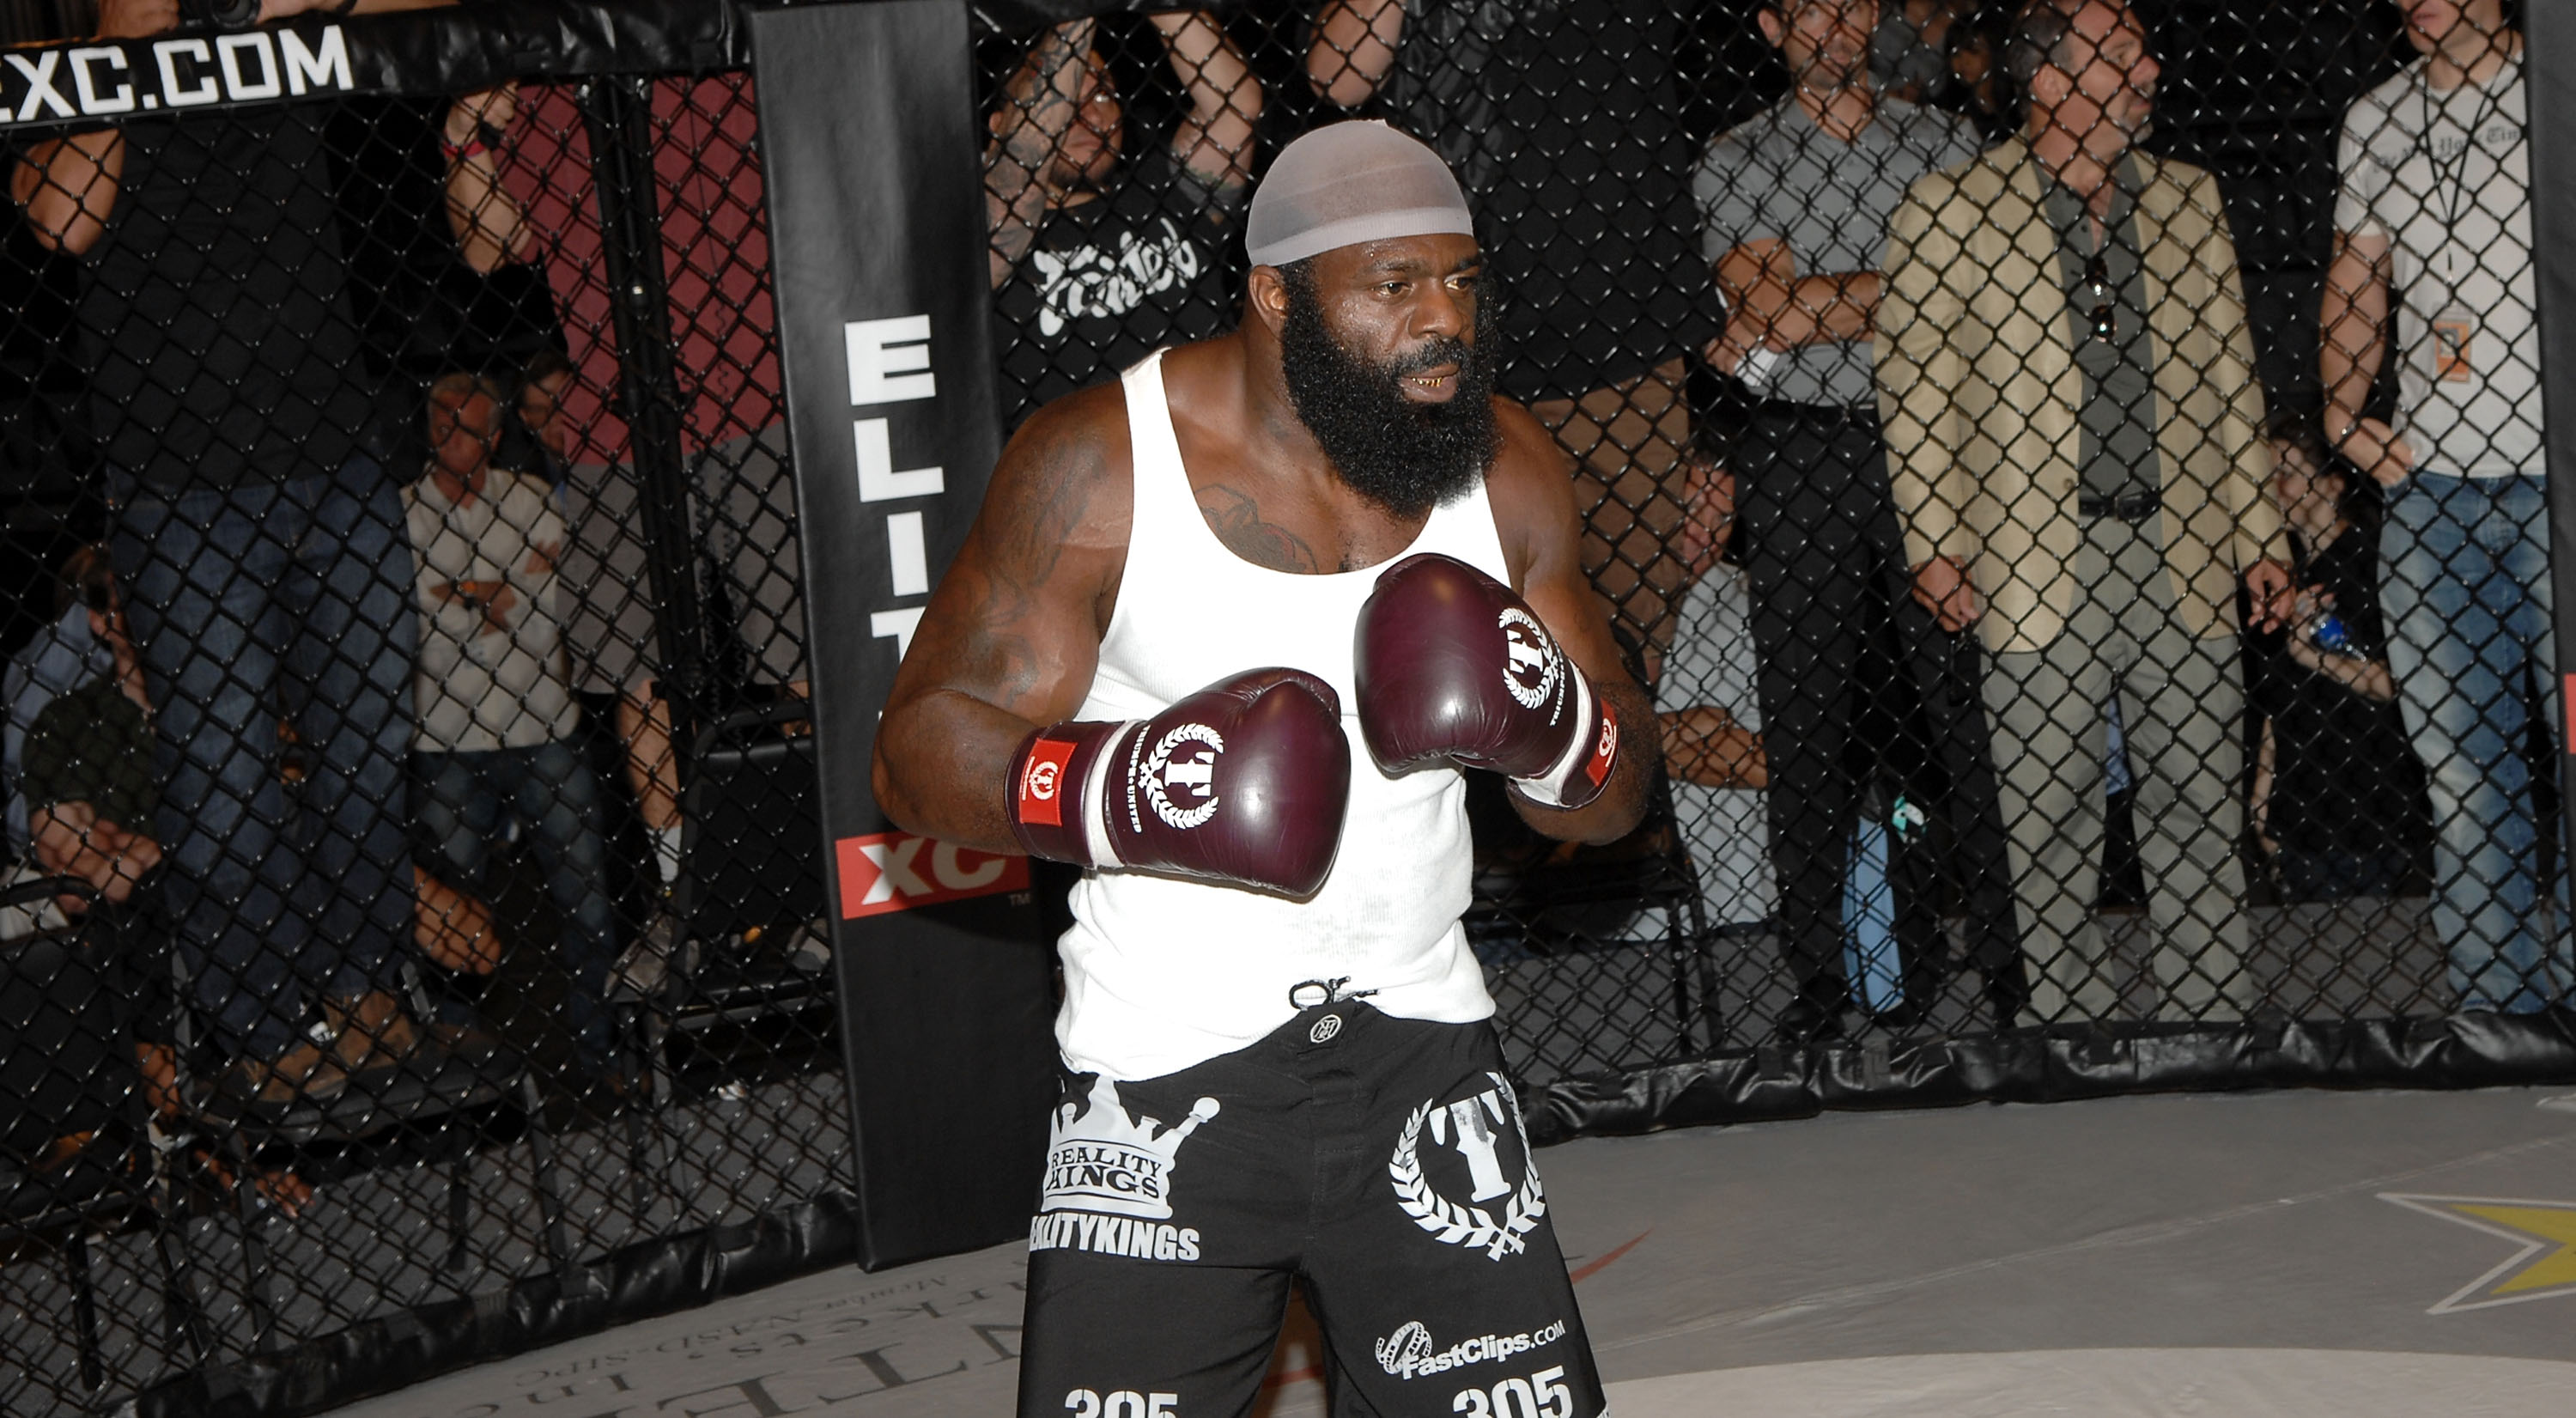 kimbo slice, cause of death, how did kimbo slice die